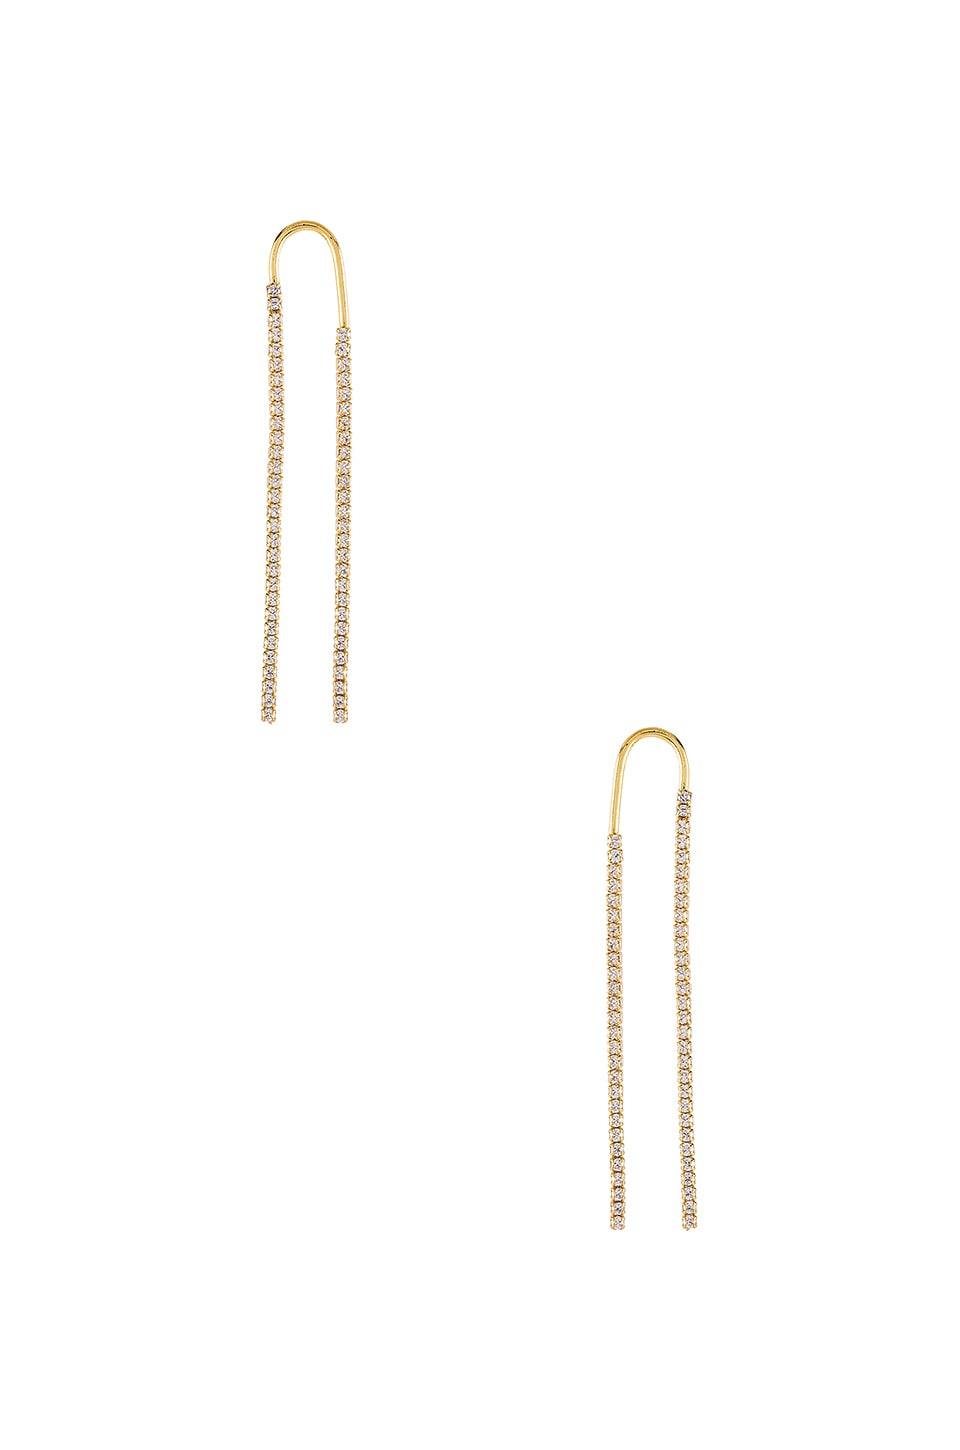 joolz by Martha Calvo Over The Top Earrings in Gold